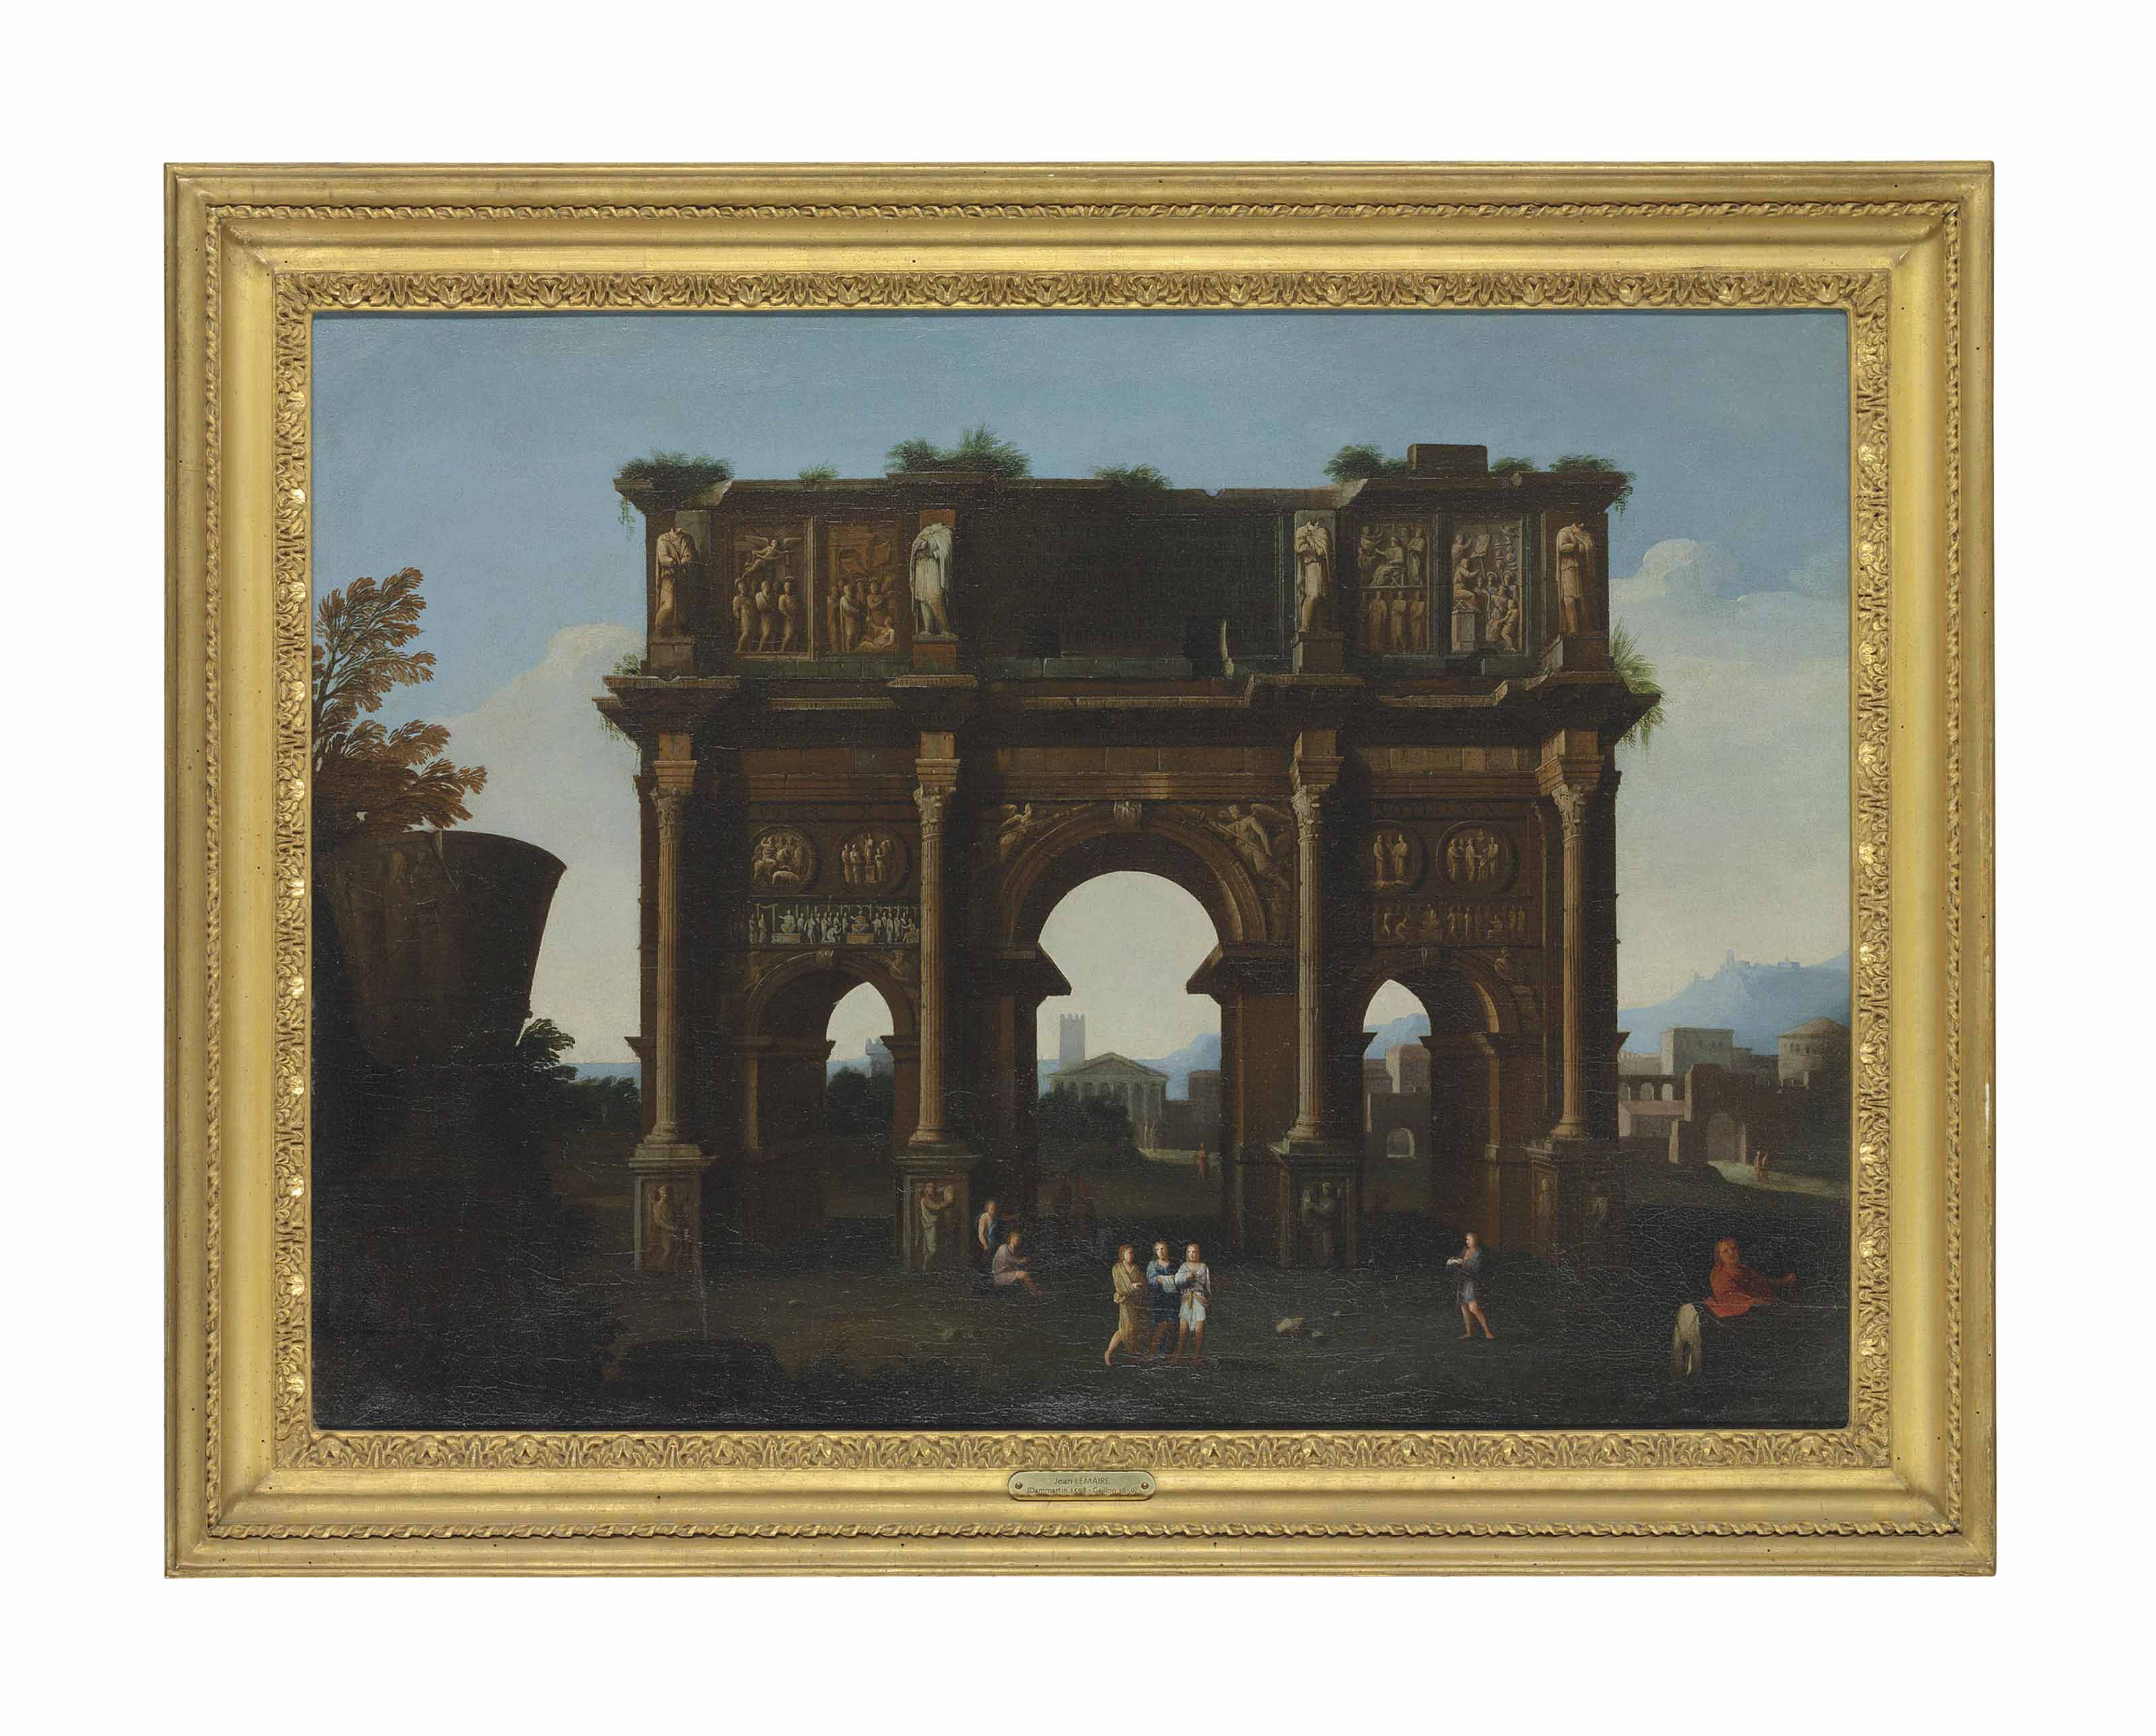 An architectural capriccio with the Arch of Constantine